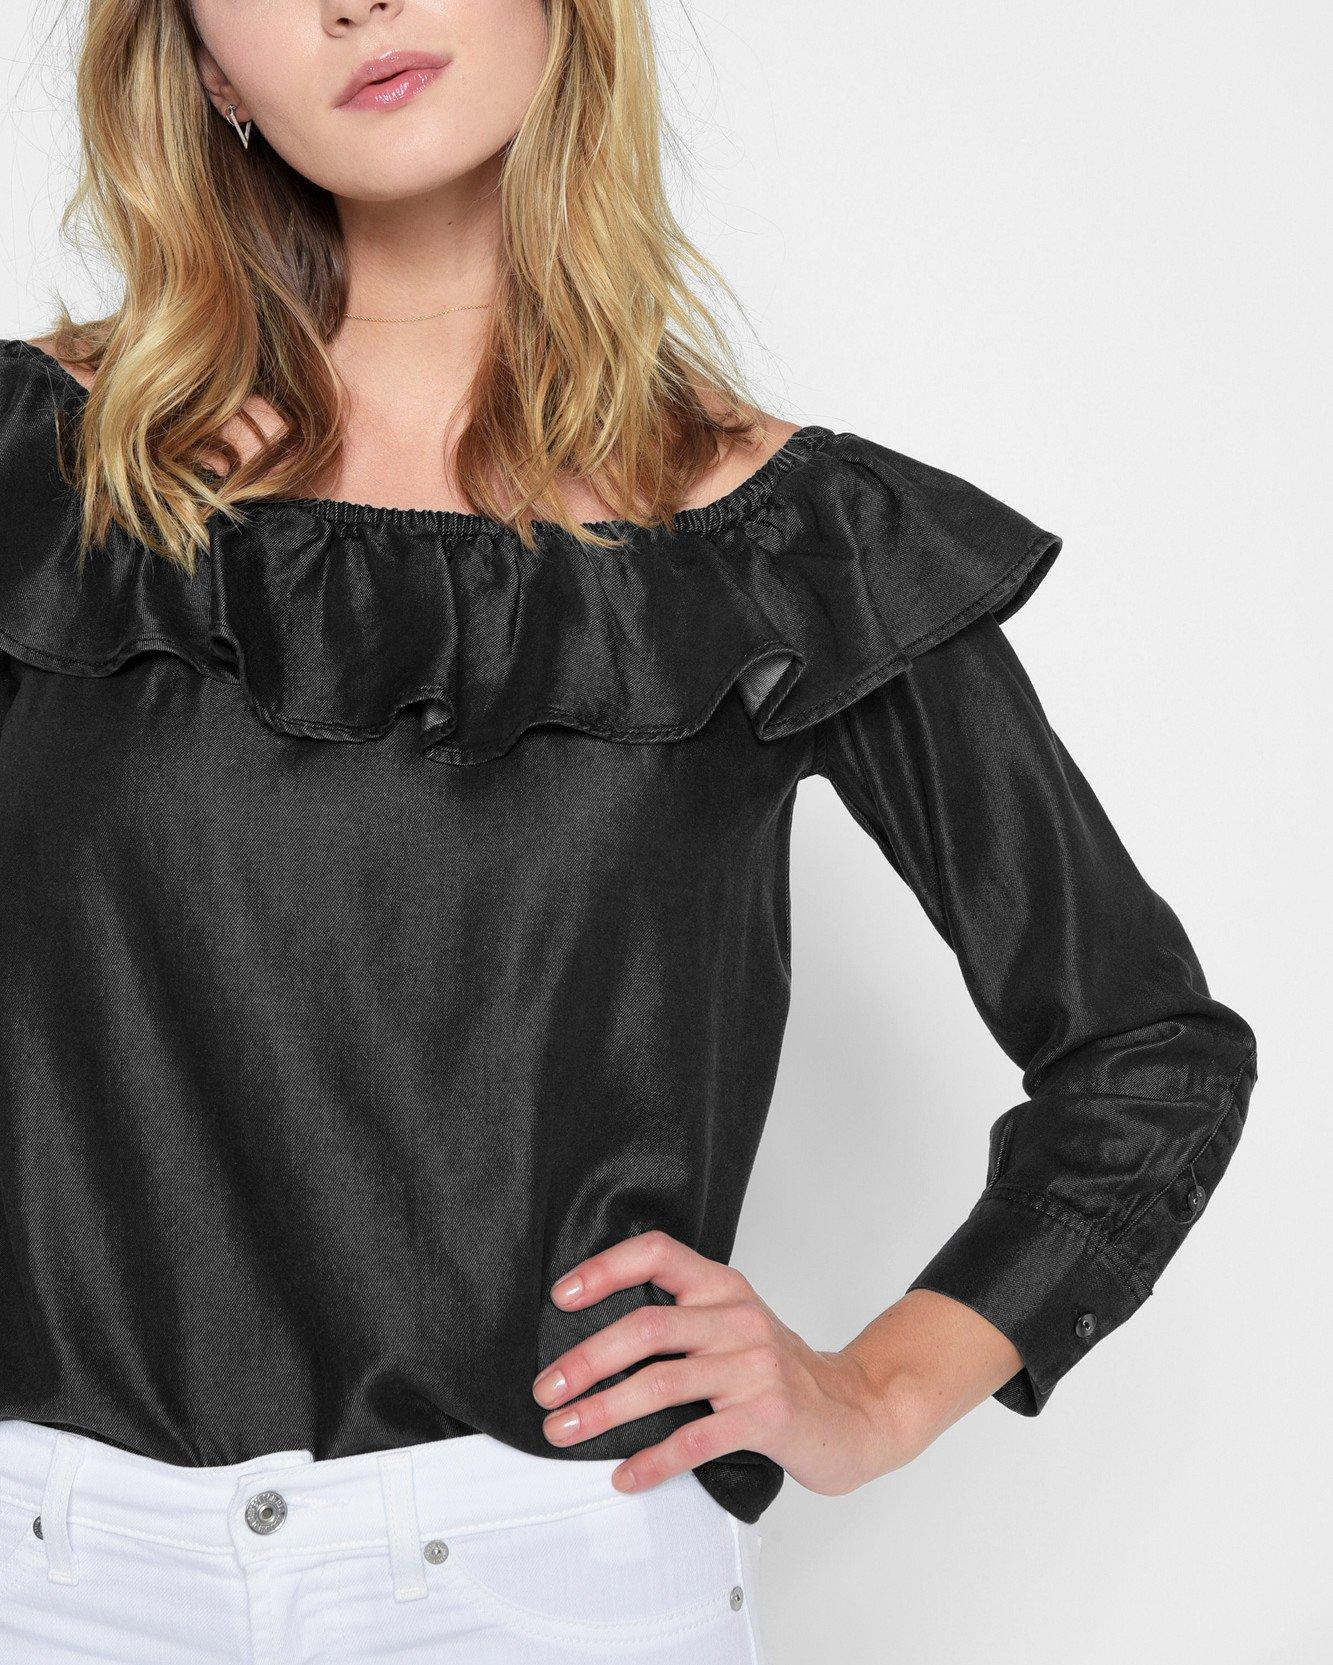 8dbb861966e Lyst - 7 For All Mankind Long Sleeve Ruffled Off Shoulder Top in Black